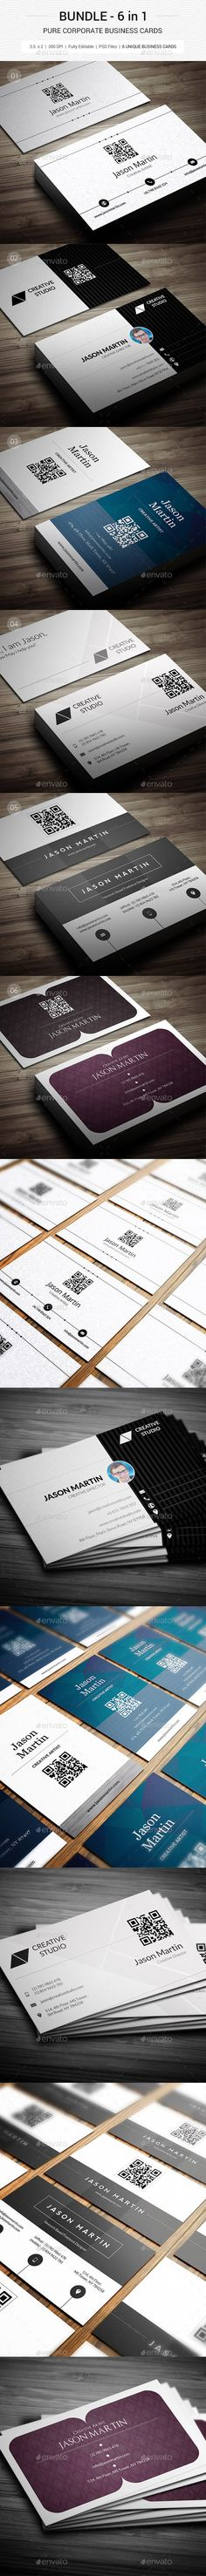 Bundle - Pure Corporate Business Cards Template #print #design Download: http://graphicriver.net/item/bundle-pure-corporate-business-cards-130/11996268?ref=ksioks